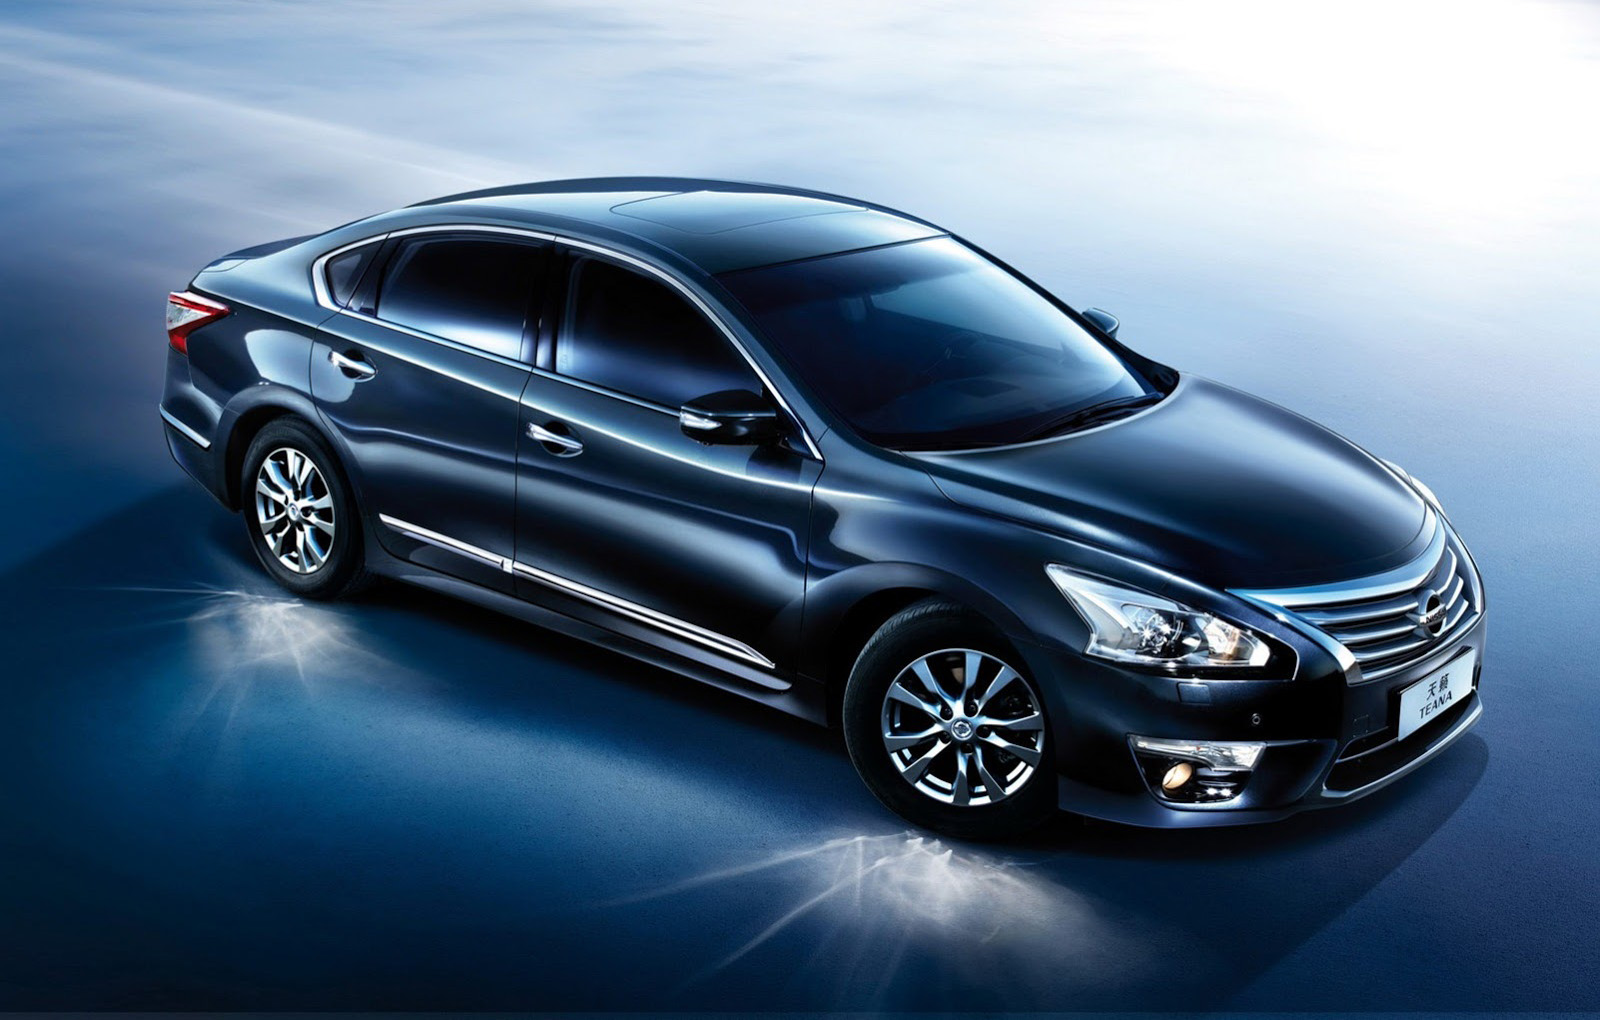 2014 Nissan Teana Unveiled In China Based On Altima Image